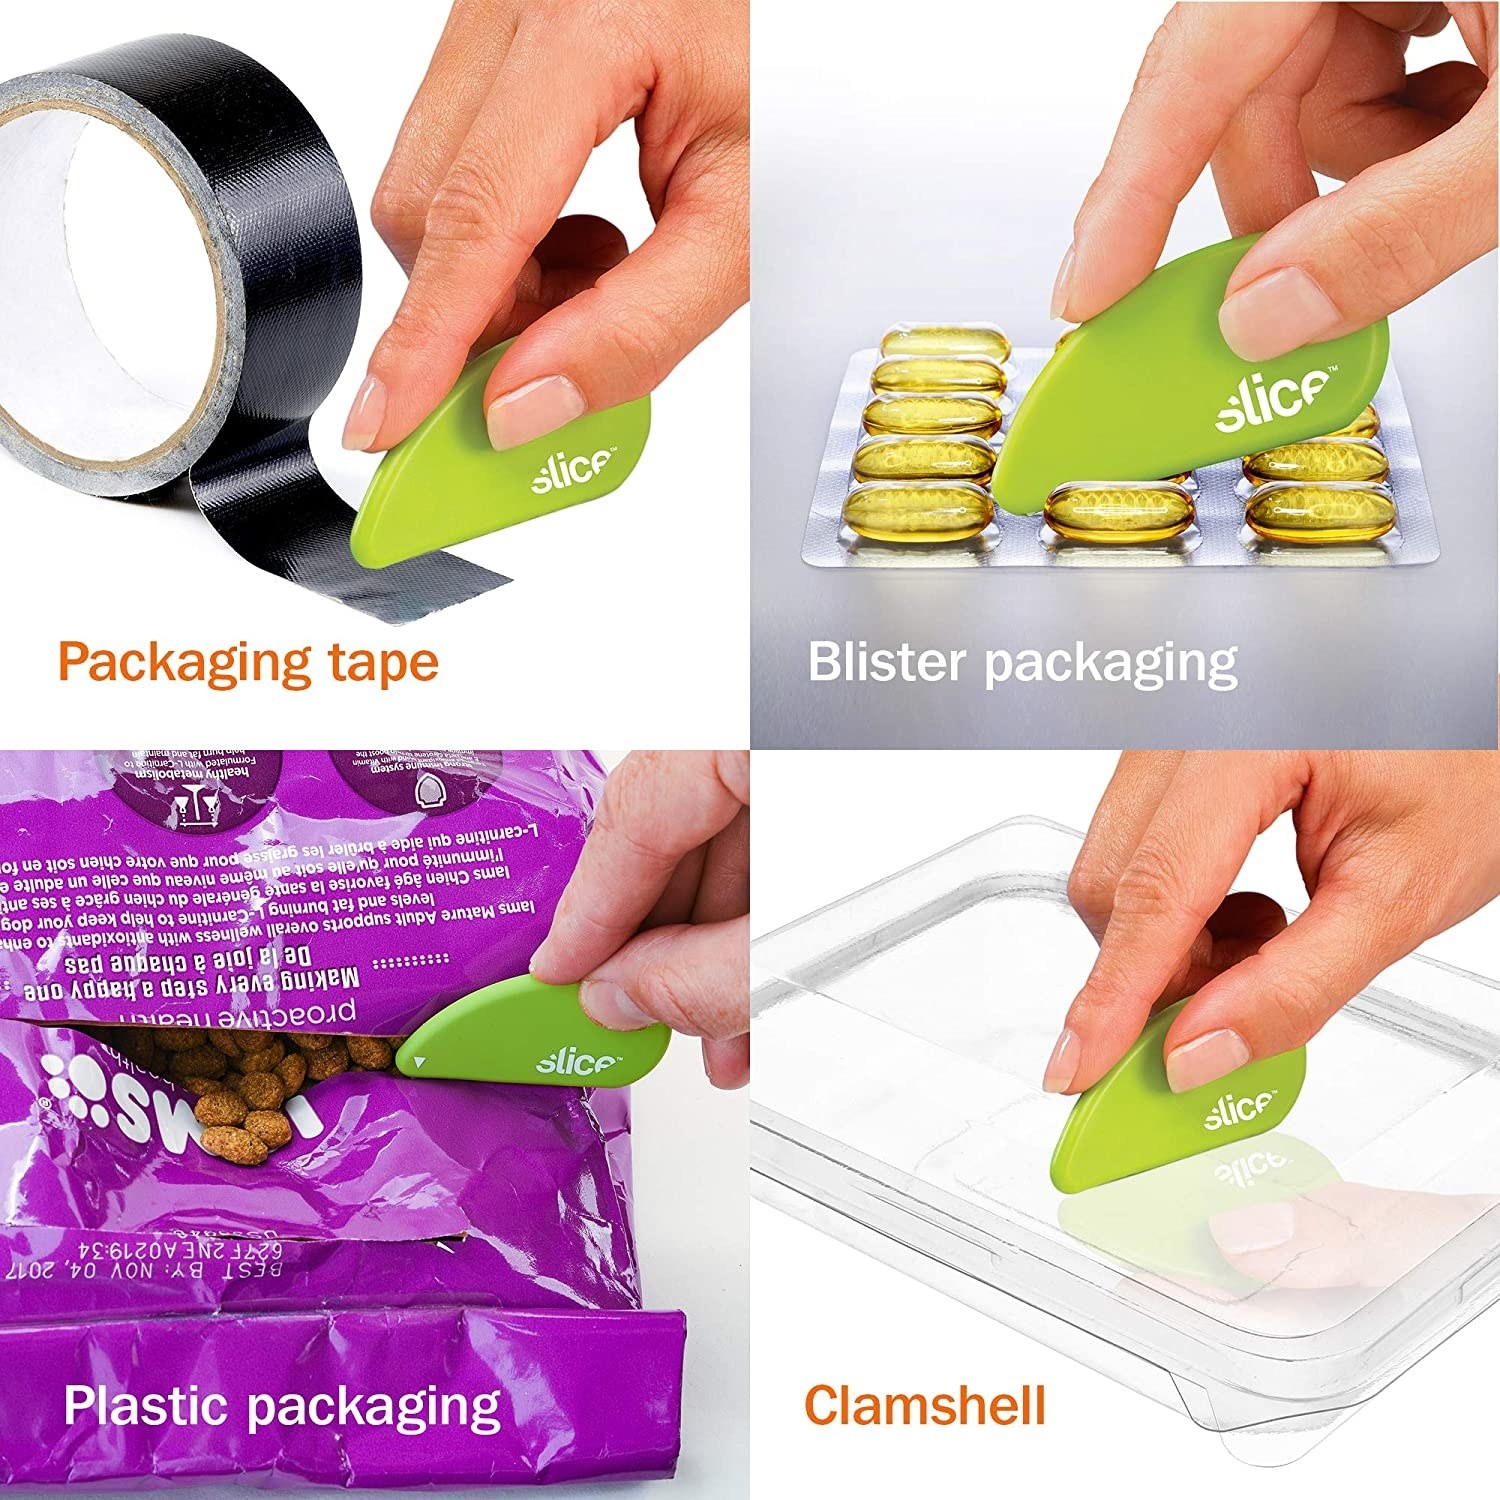 The cutting tool slicing through packaging tape, blister packaging, plastic bags, and clamshell